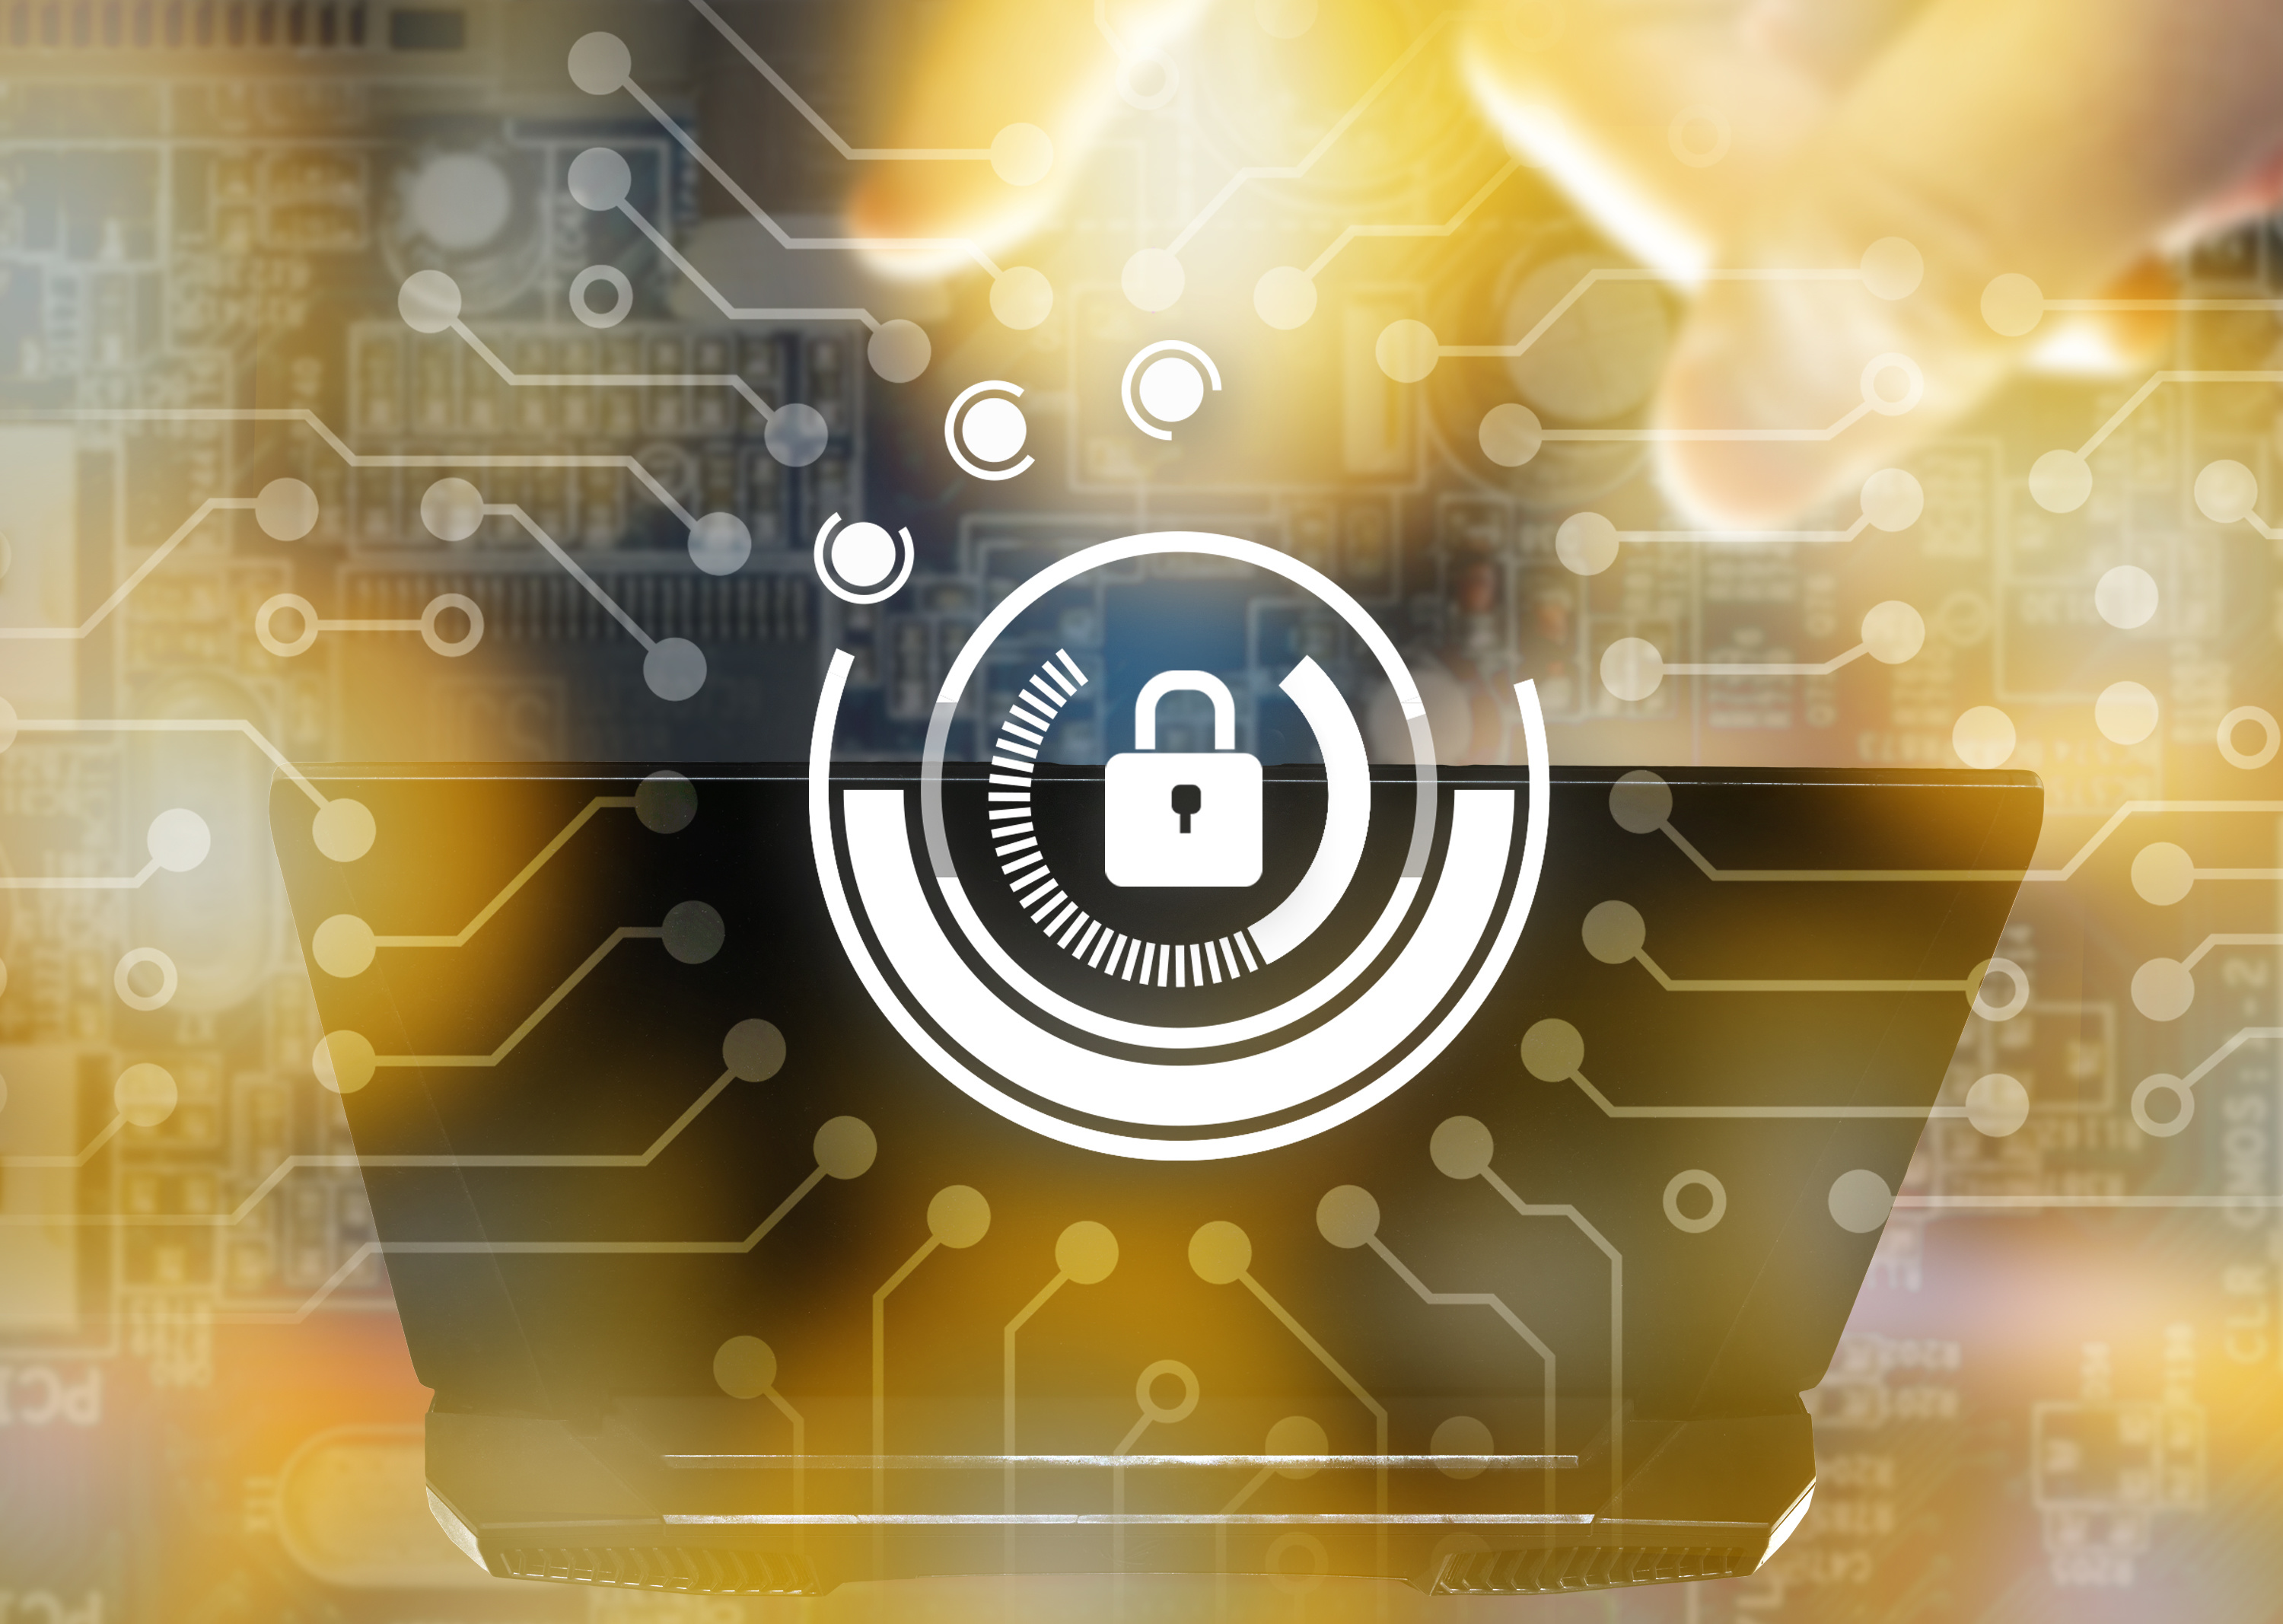 Sensato | Keep up-to-date on the latest in Cybersecurity